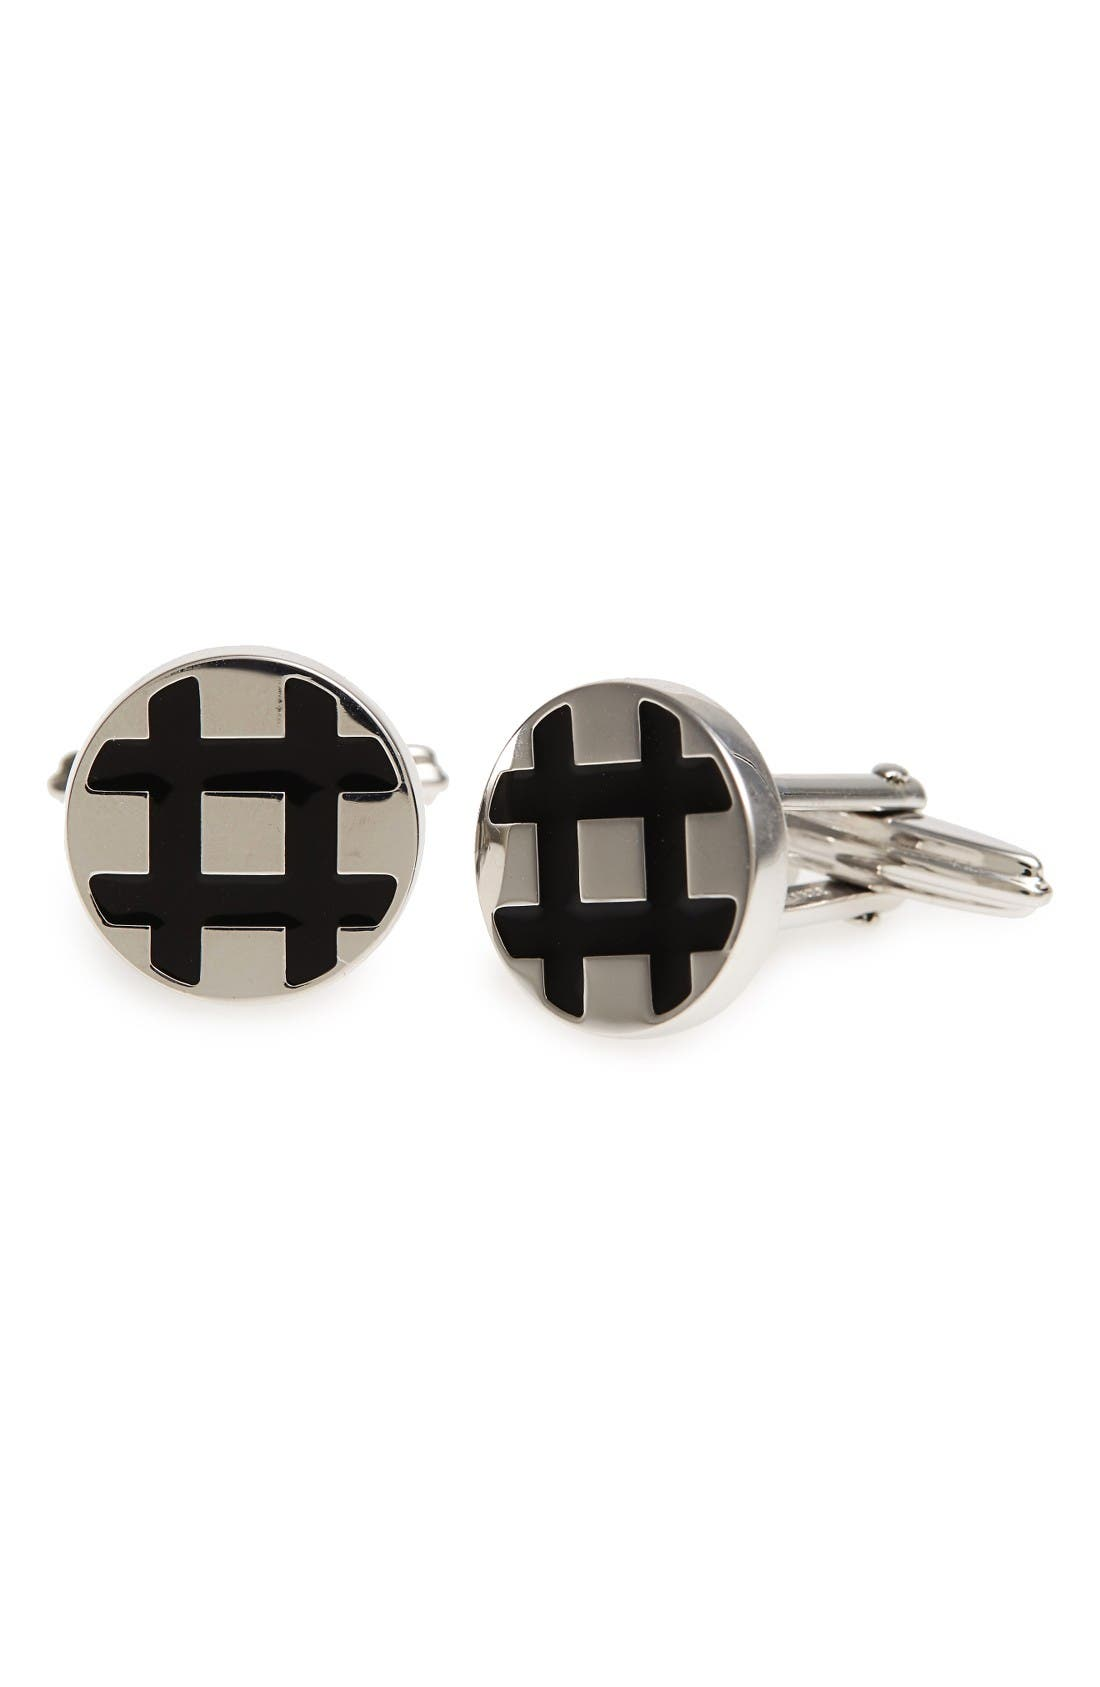 LANVIN Hashtag Cuff Links